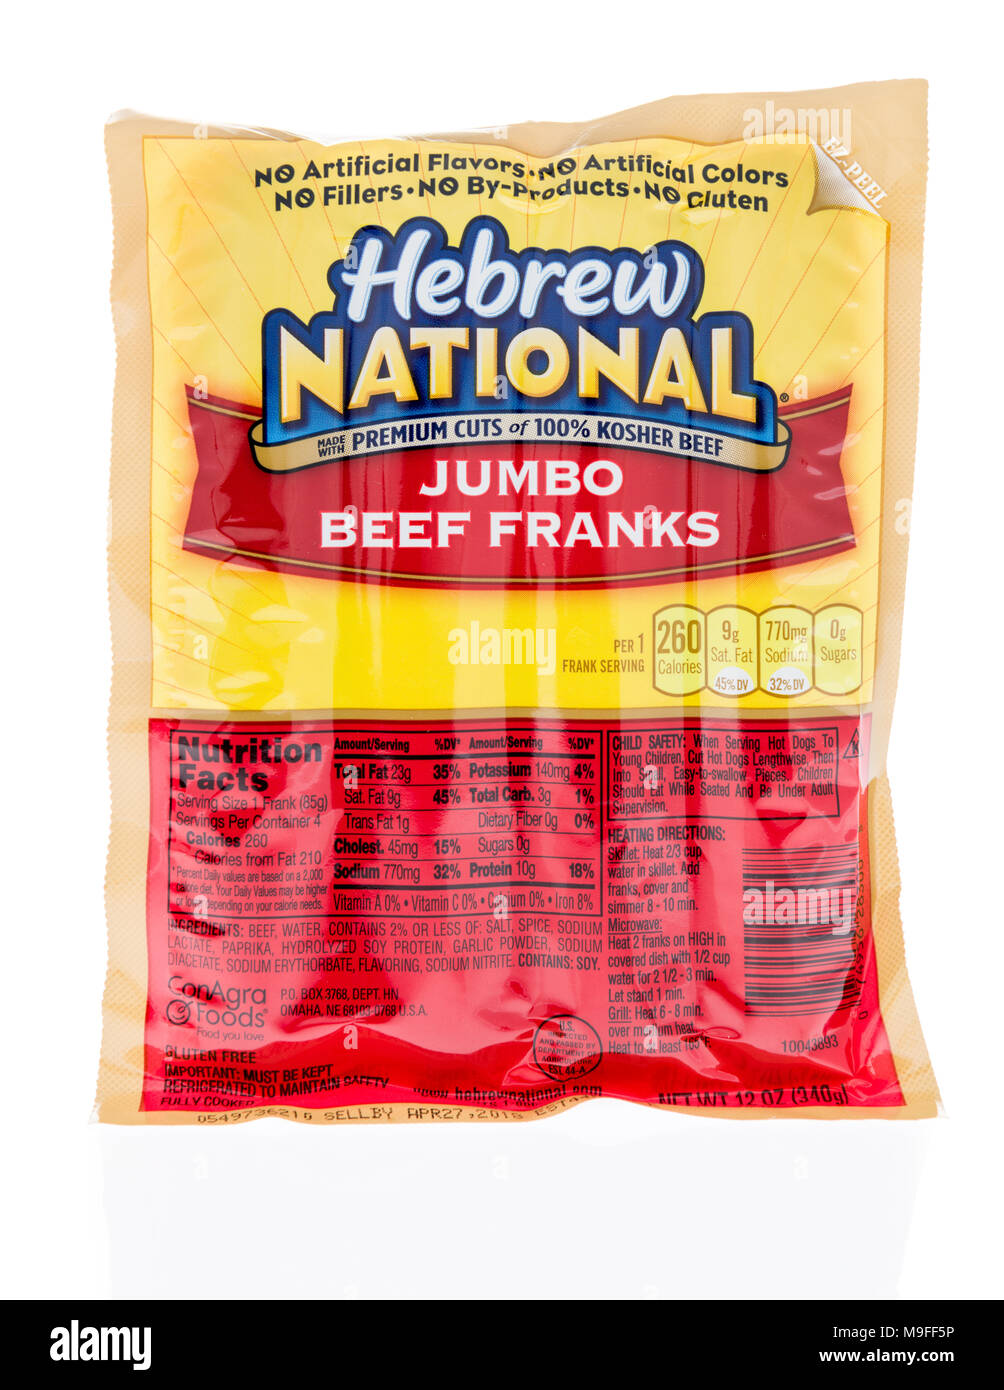 Winneconne, WI - 21 March 2018: A package of Hebrew National jumbo beef franks on an isolated background. - Stock Image